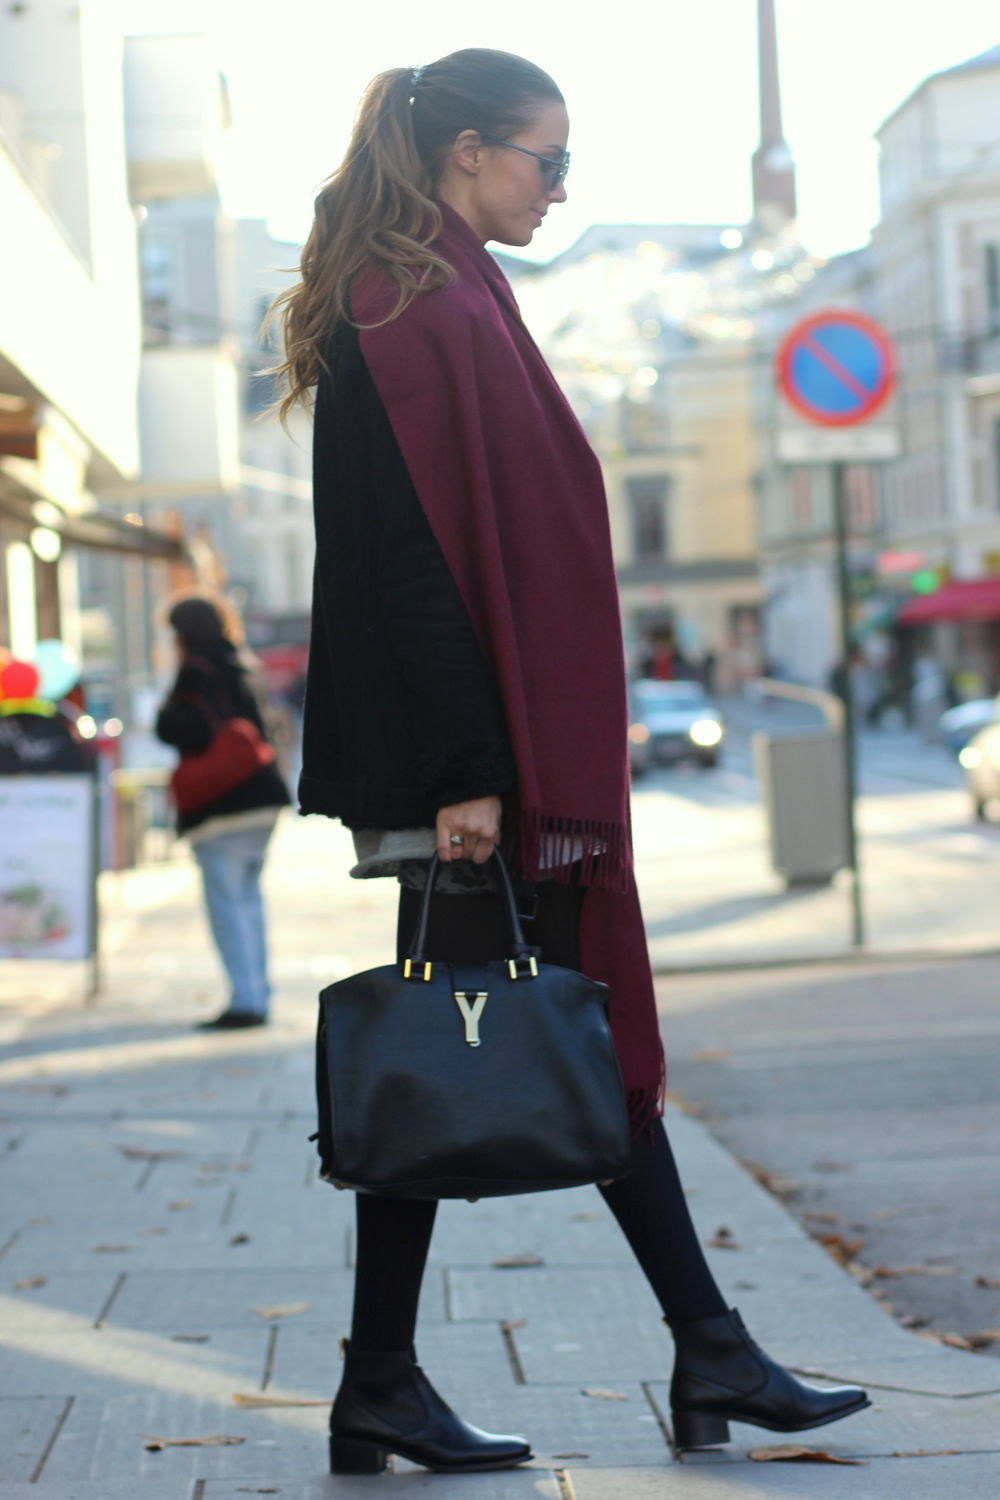 Benedichte is wearing a large burgundy scarf from Creative Collective